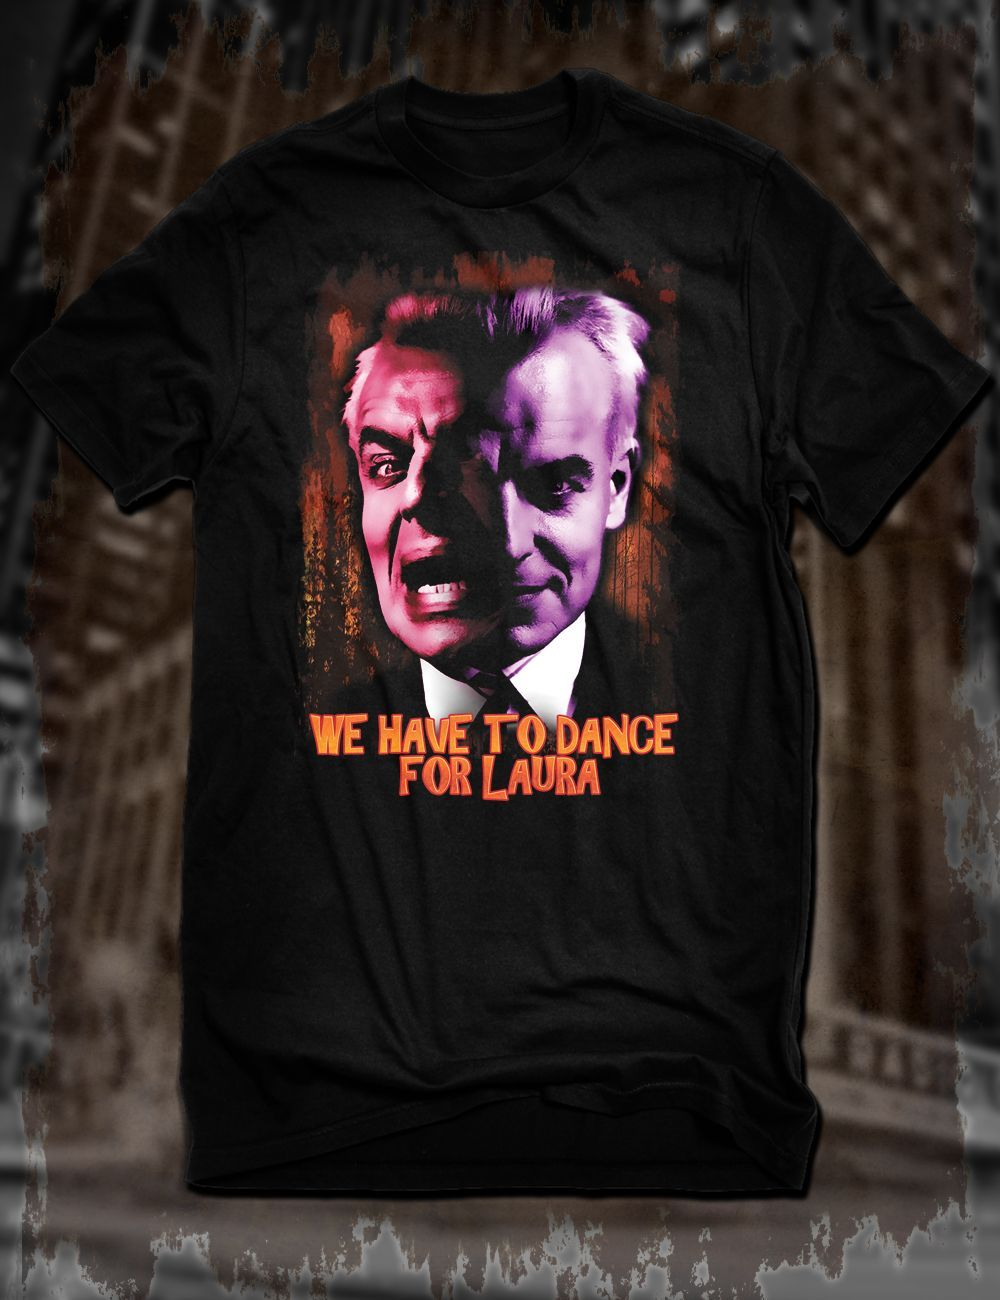 New Black Twin Peaks Leland Palmer T-Shirt Ray Wise Killer Bob David Lynch Tee